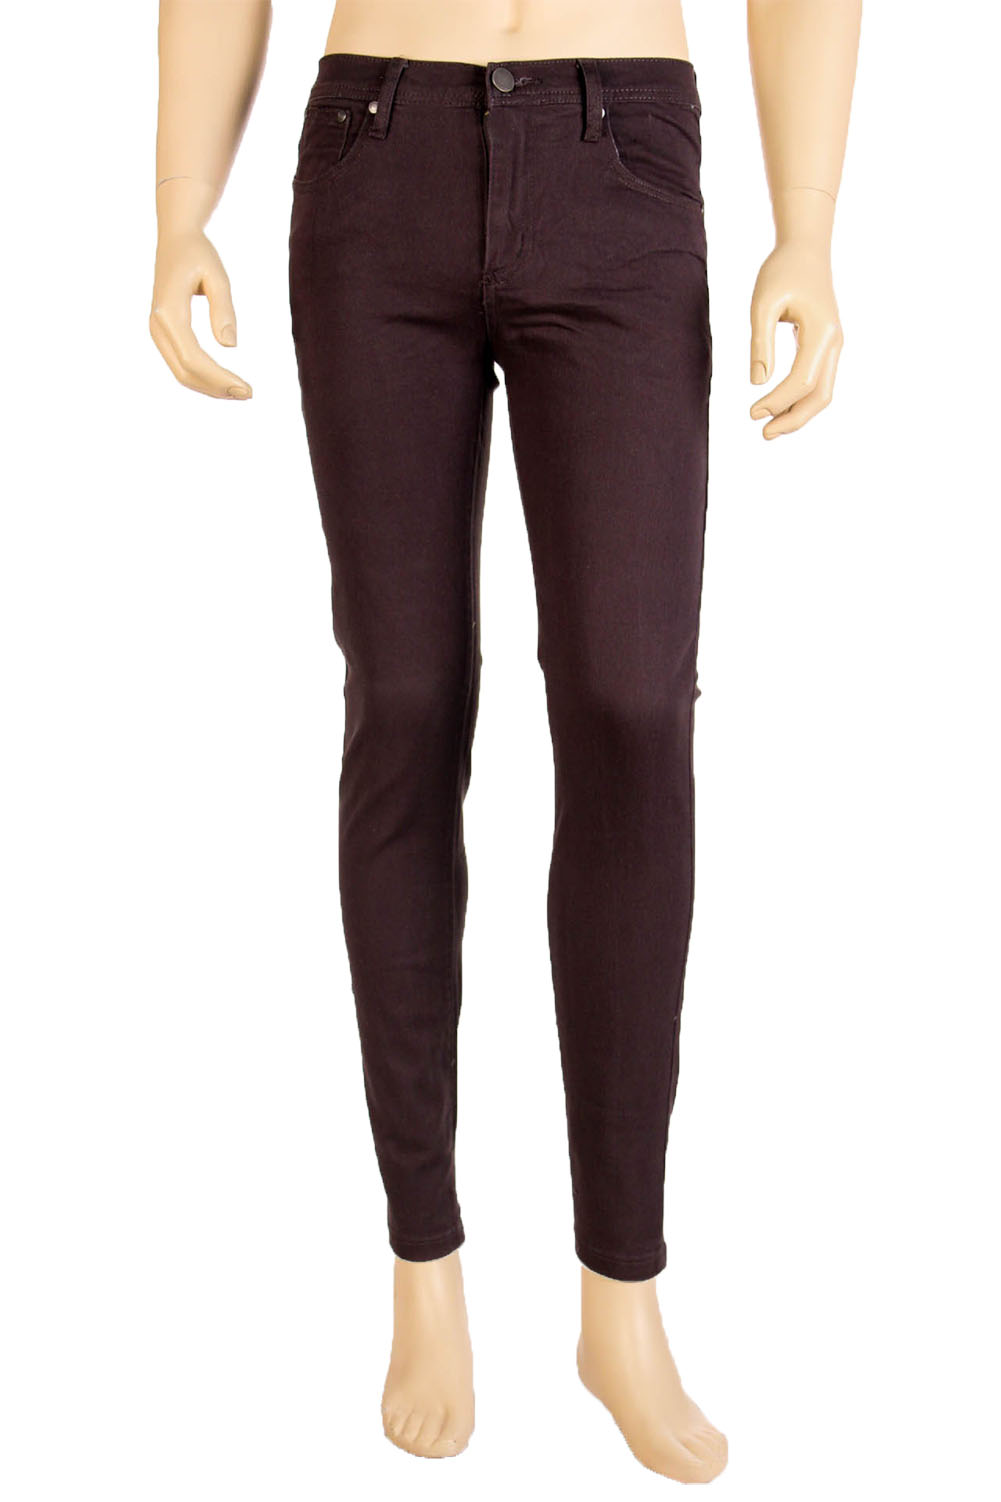 Shop latest fashion men's pants online at ZAFUL. Browse our wide collection of trendy man pants, men trousers with many colors at affordable prices.